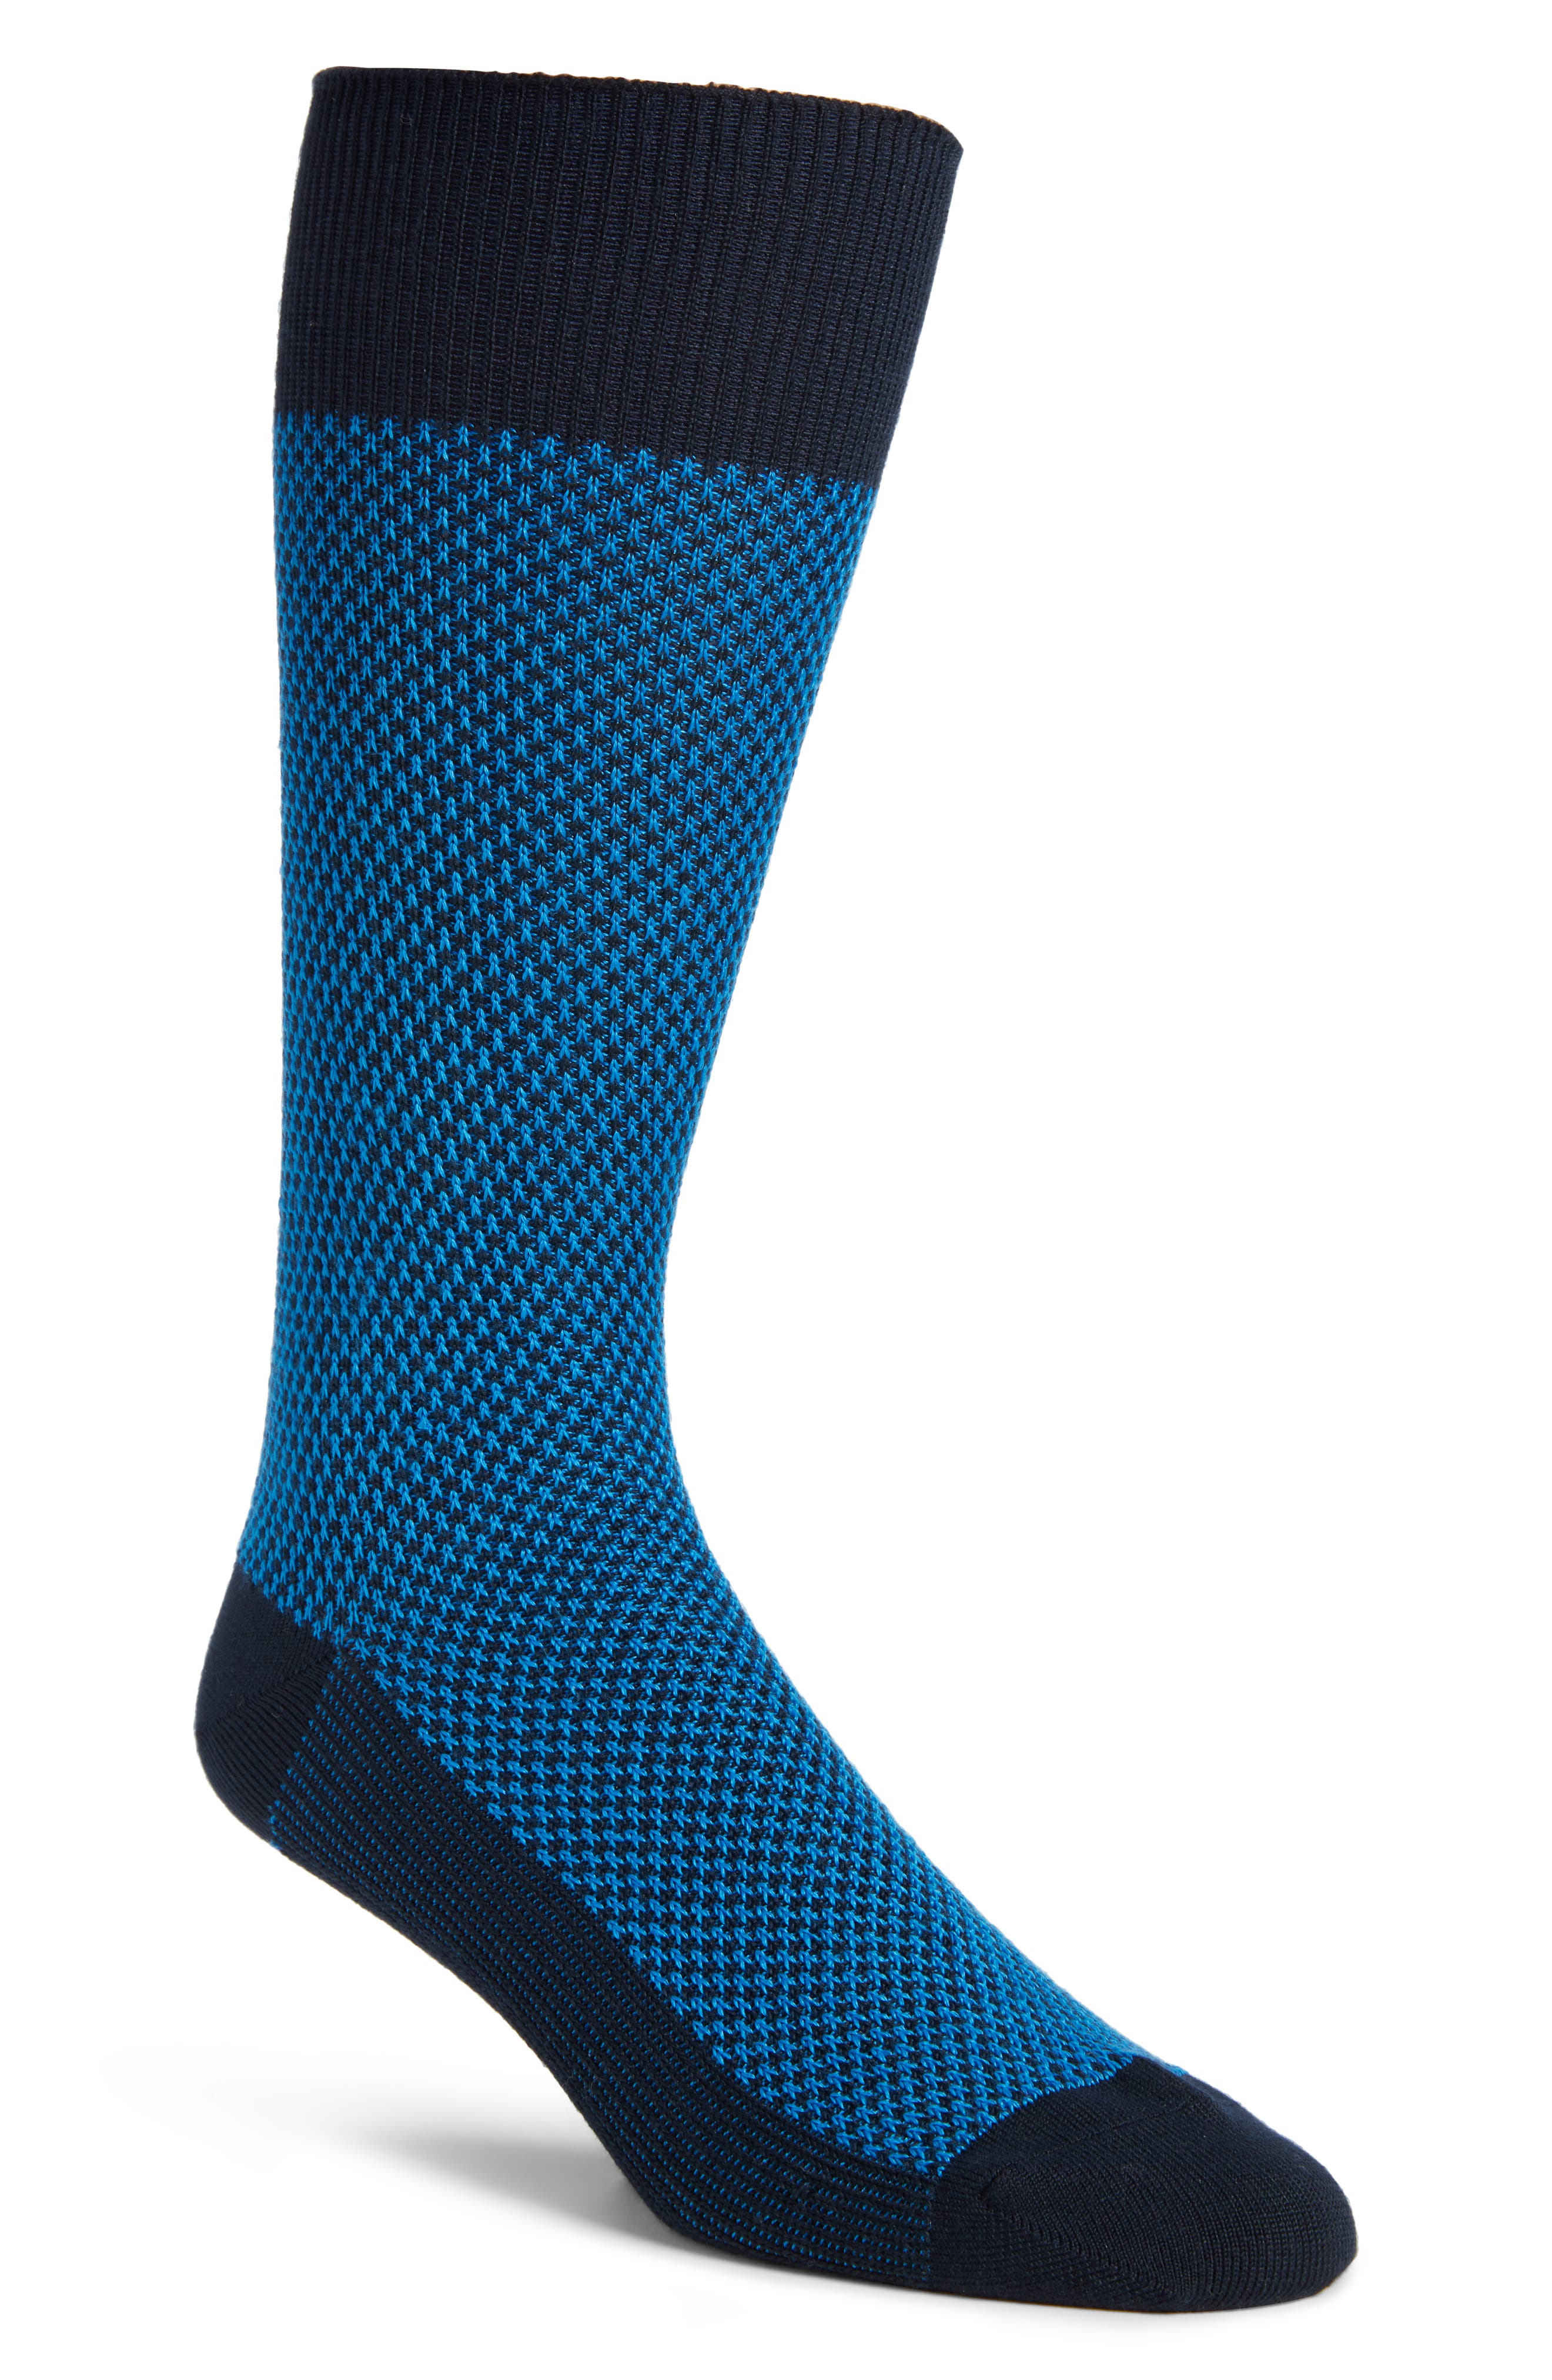 Ultra Soft Textured Socks,                             Main thumbnail 1, color,                             NAVY/ BLUE